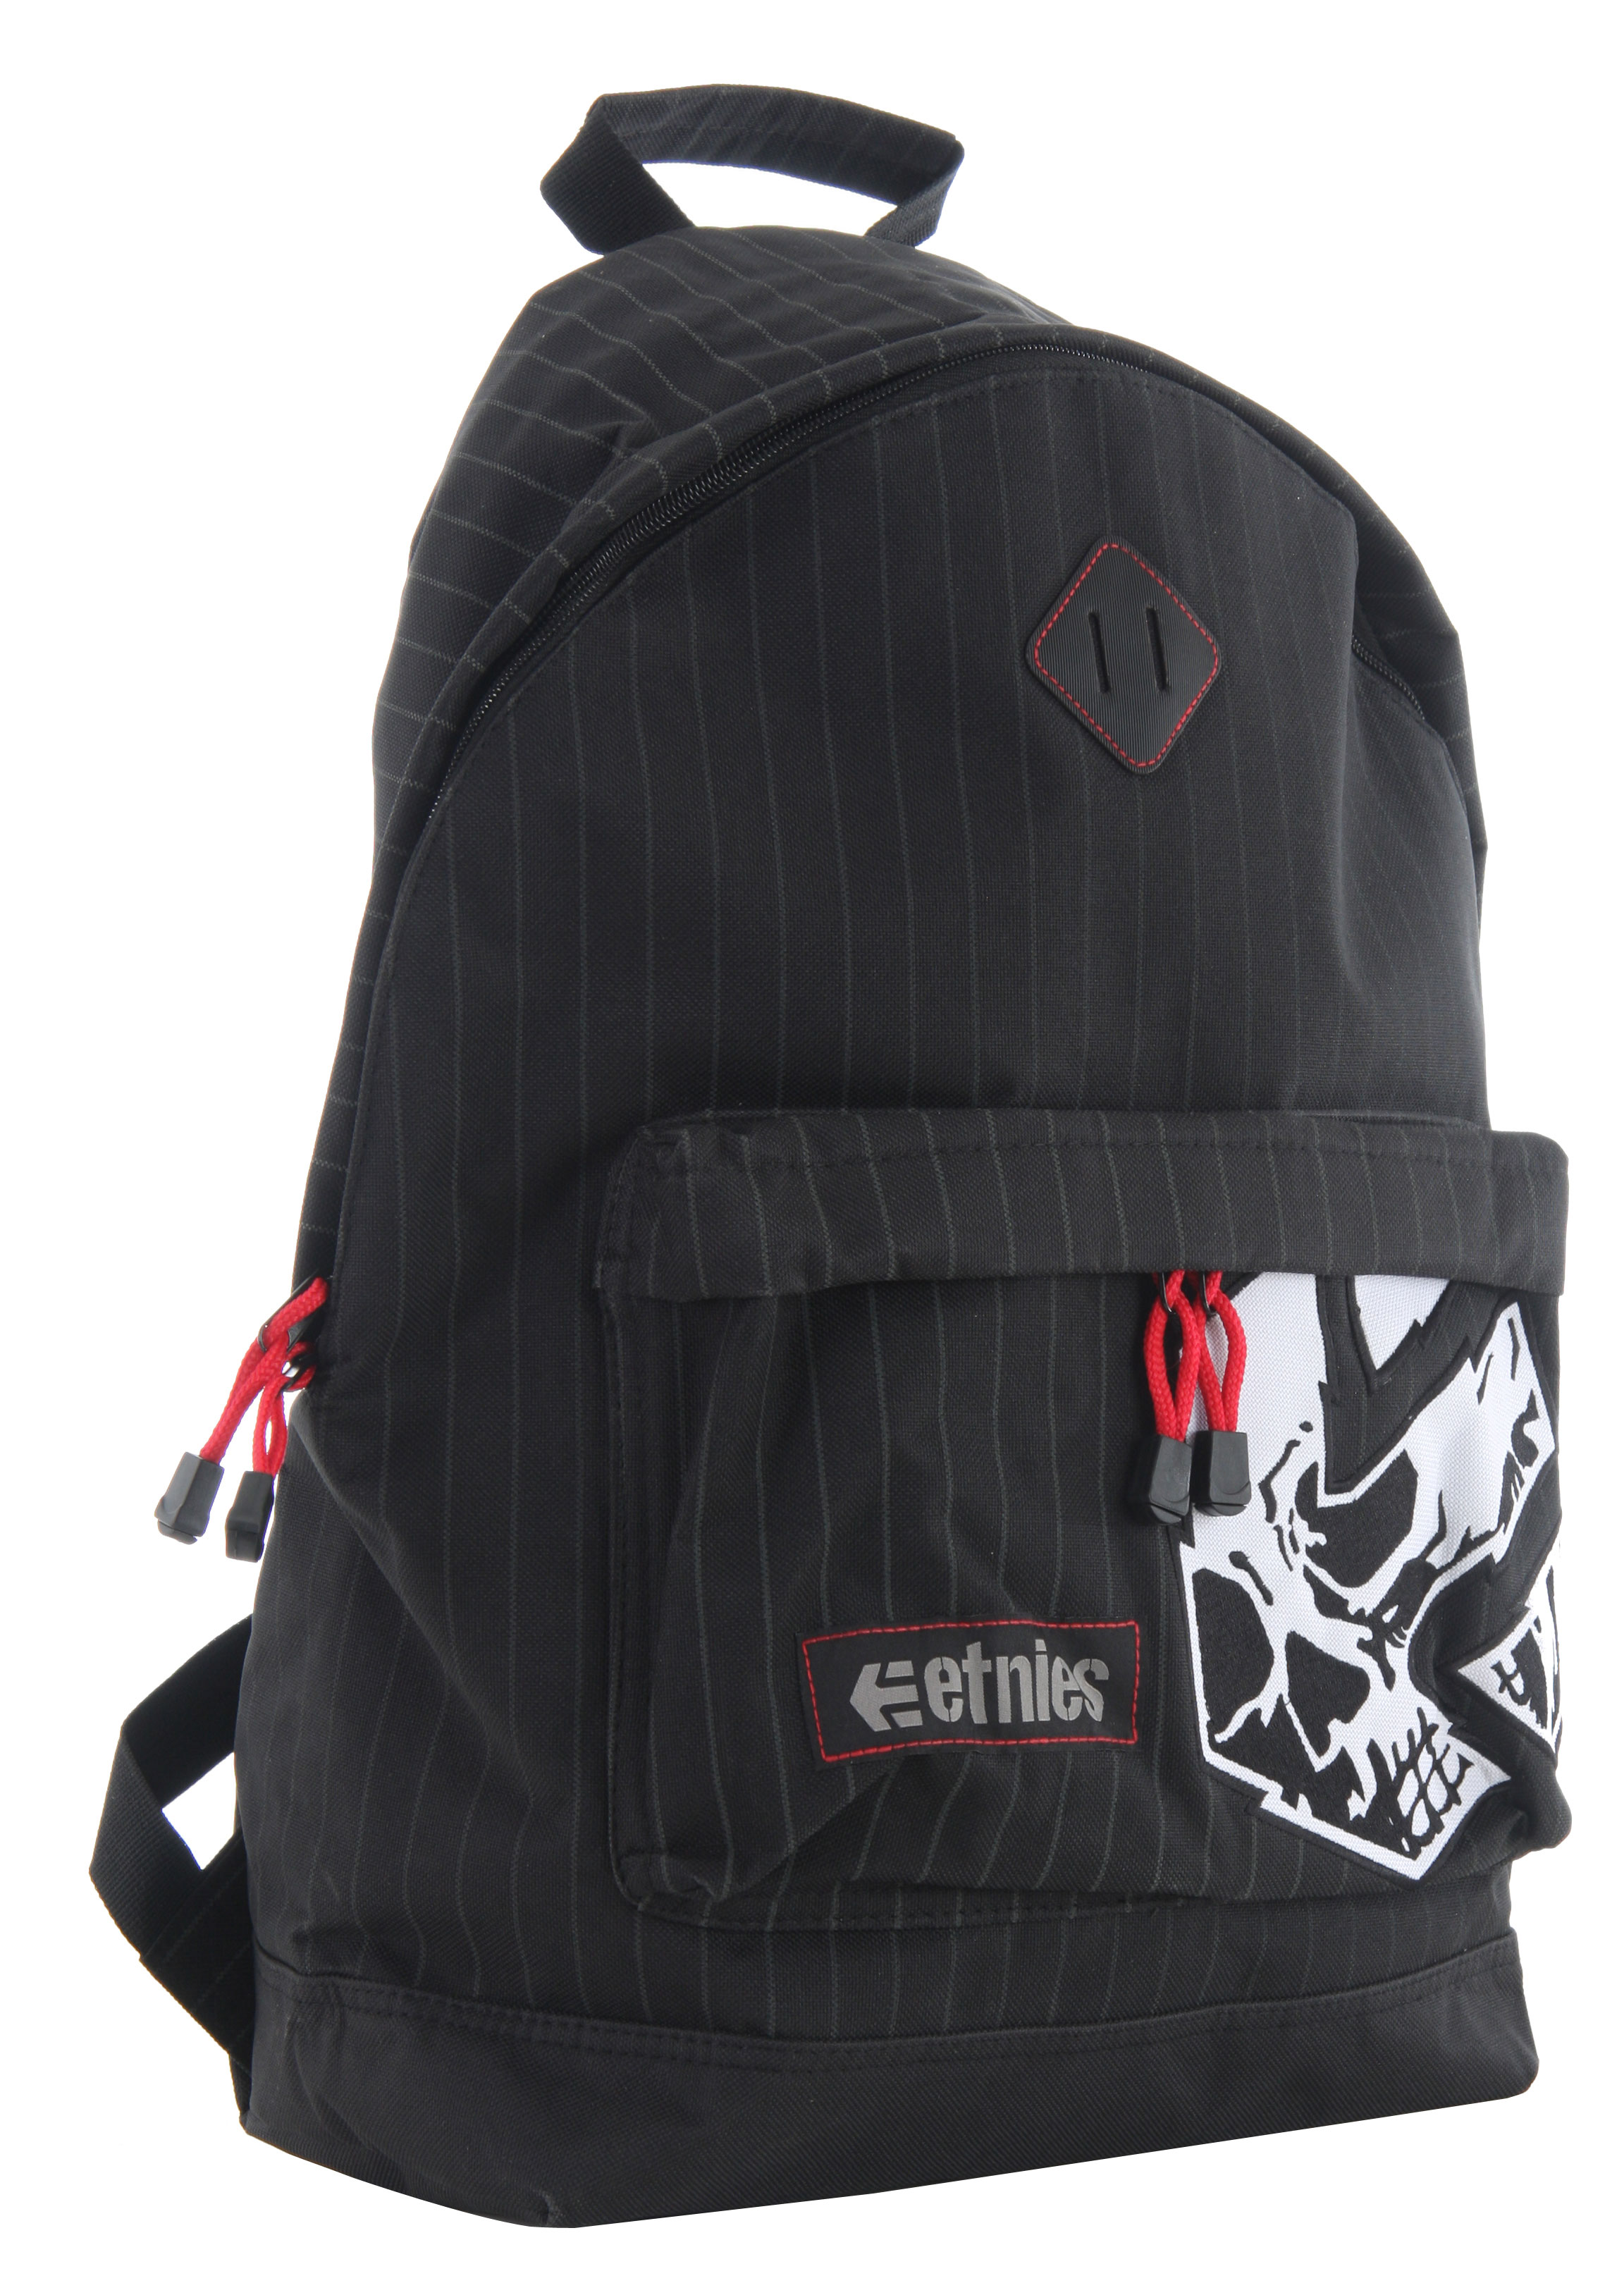 Skateboard If your somebody who thinks backpacks aren't cool, take a look at this one, please! This Etnies Essential backpack will not only keep your belonging secure, but this bag is also hip to carry. Made out of 100% polyester, this 600D basic backpack will be given compliments on many of times. Main compartment has the woven label and has a fashionable embroidered screen-printed artwork.Key Features of the Etnies Essential Backpack: 100% polyester 600D basic backpack Main compartment Woven label Embroidered screen-printed artwork - $22.95